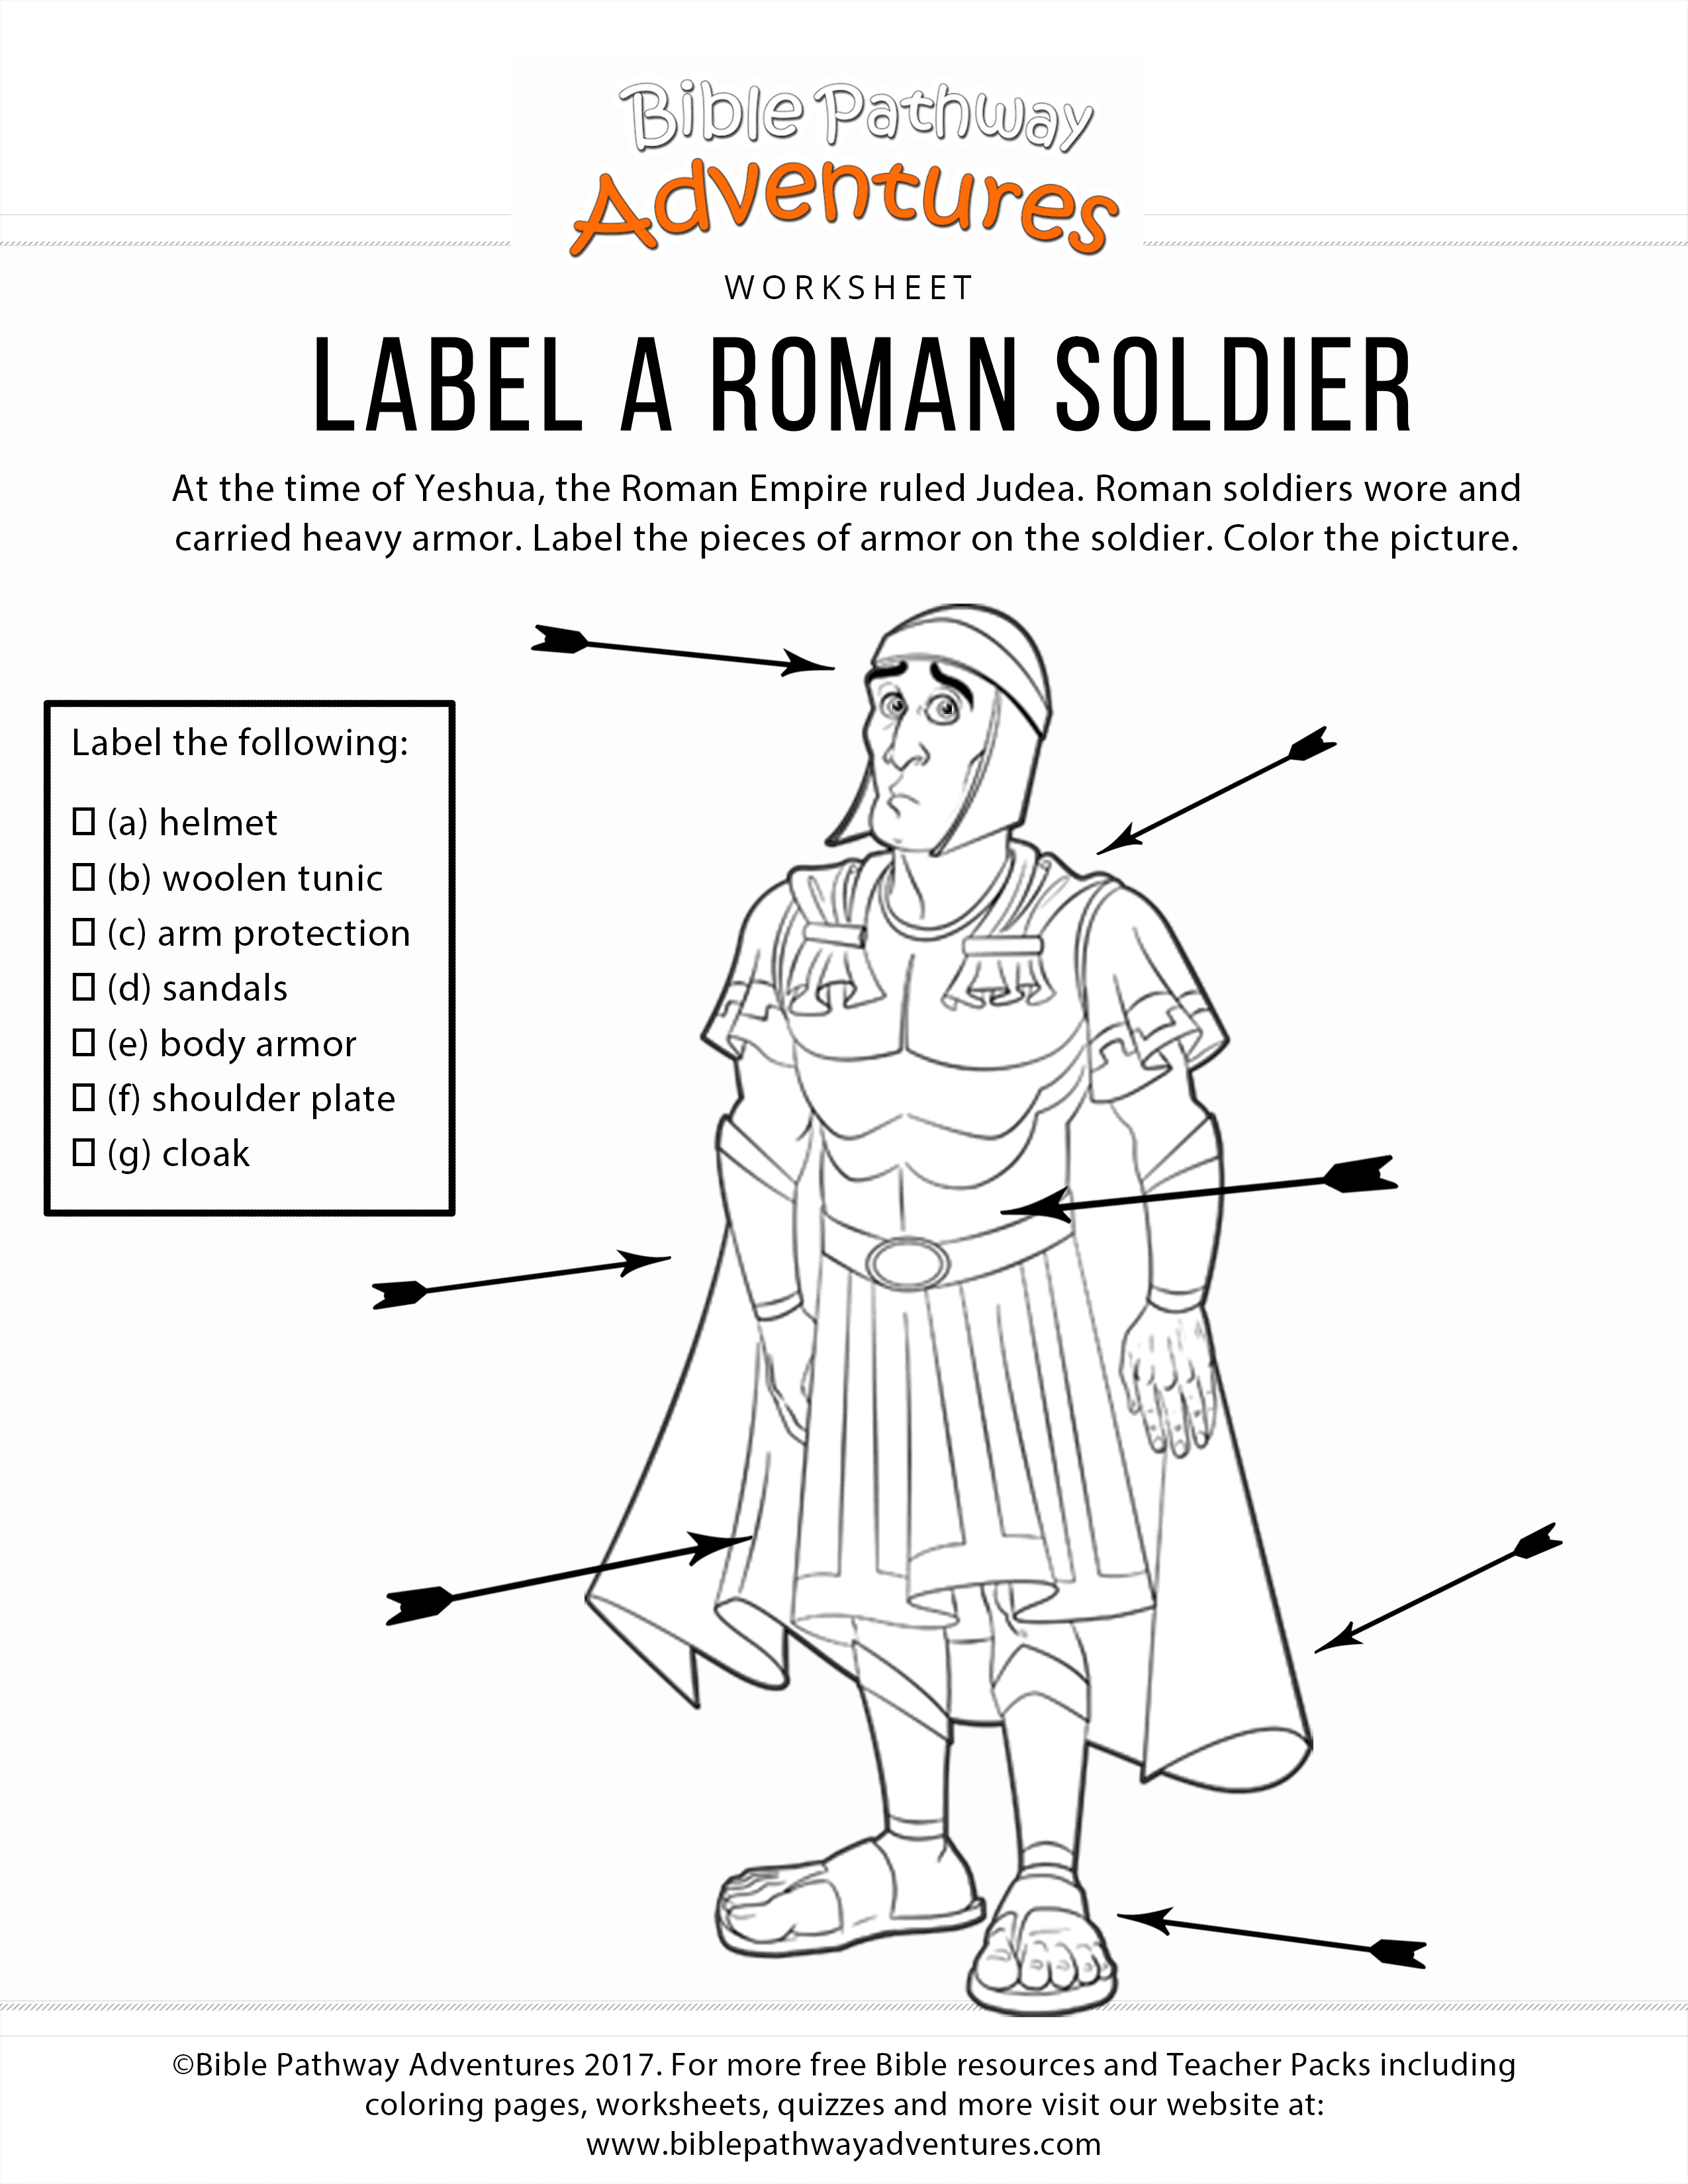 Label A Roman Sol R Coloring Page And Worksheet Bible Pathway Adventures